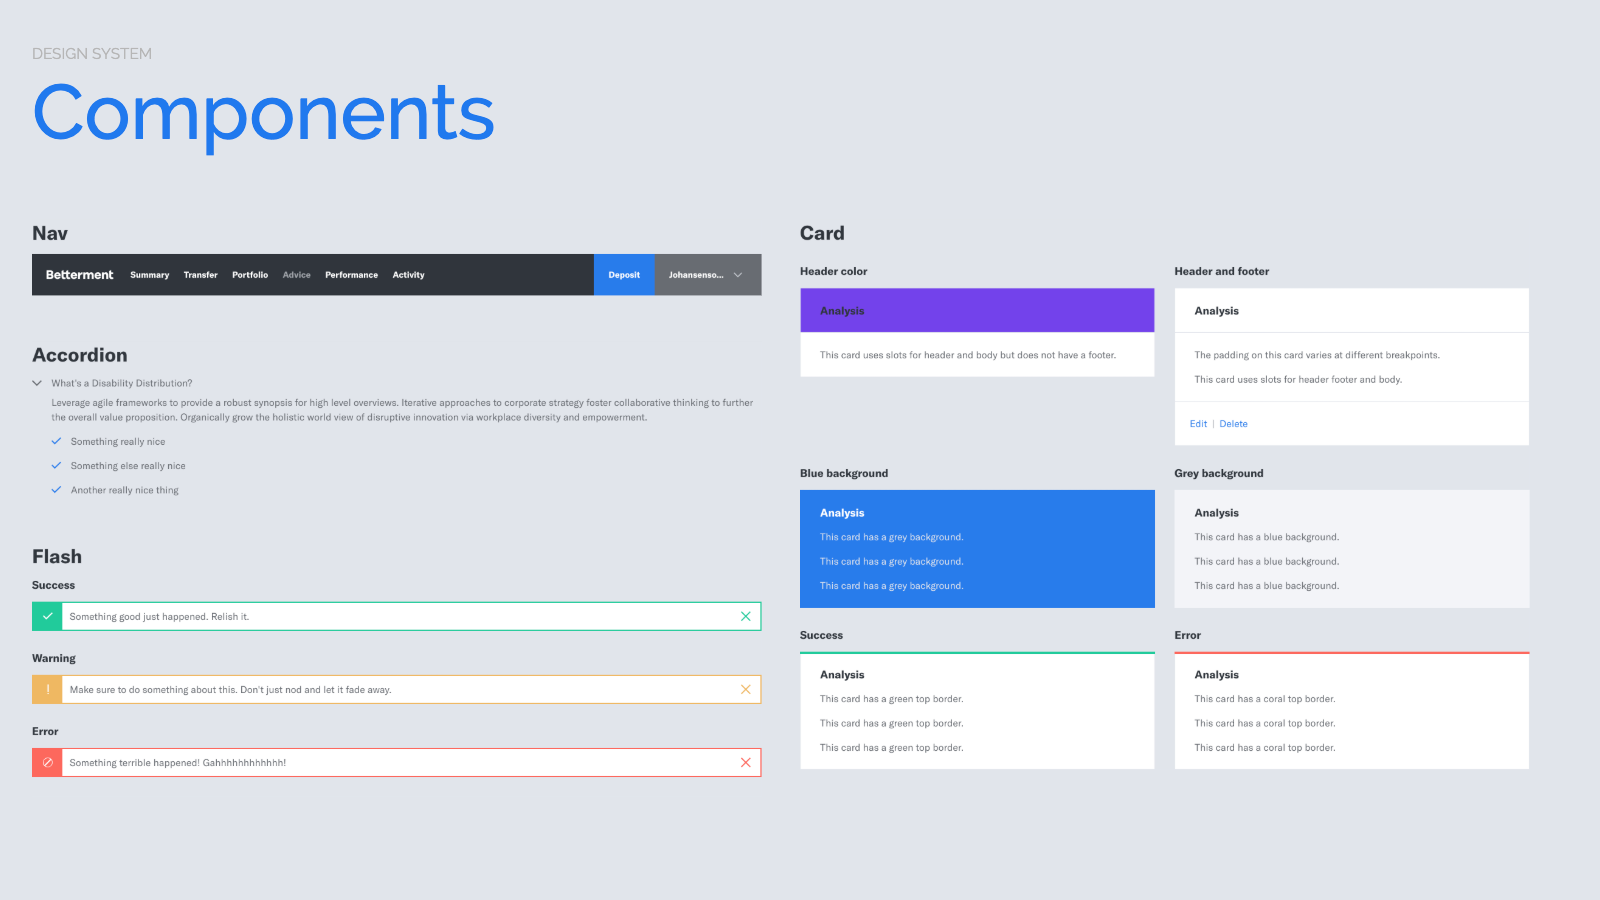 Slide content, Design system components, e.g. Nav, Accordion, Flash, Card variants